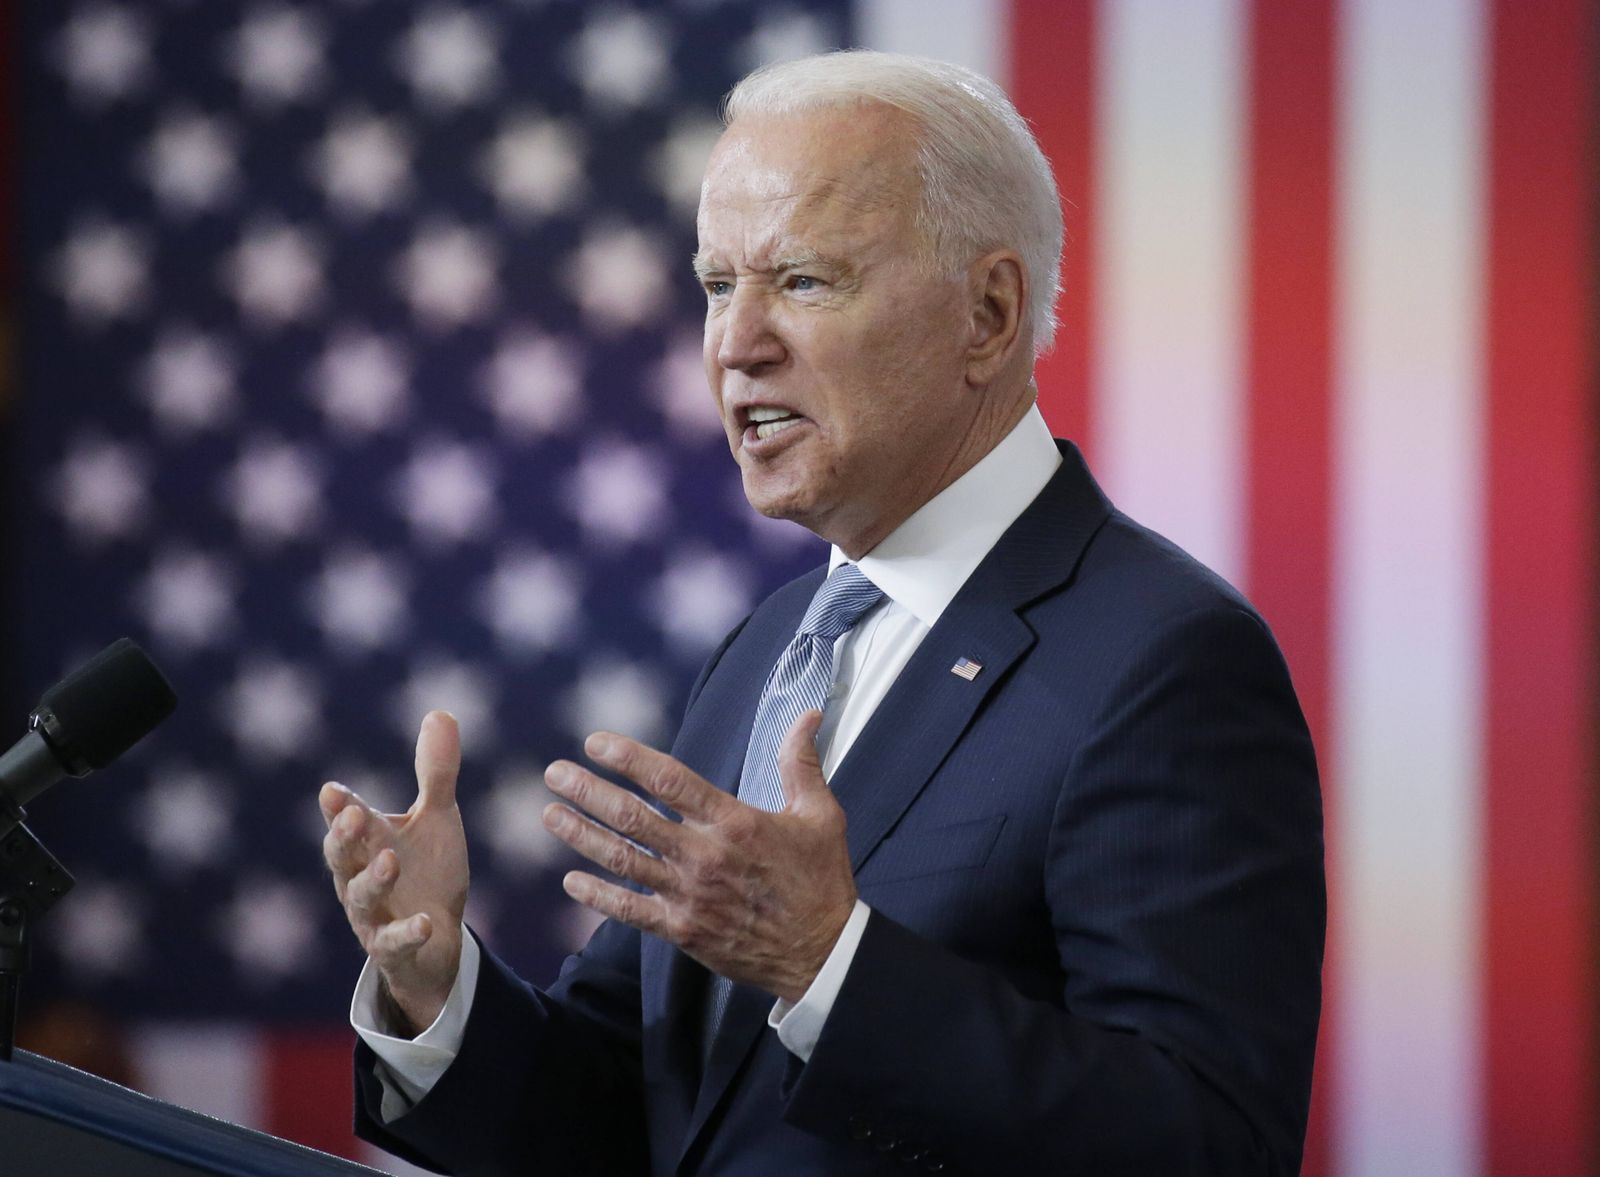 President Joe Biden delivers remarks on actions to protect the sacred, constitutional right to vote in Philadelphia on T